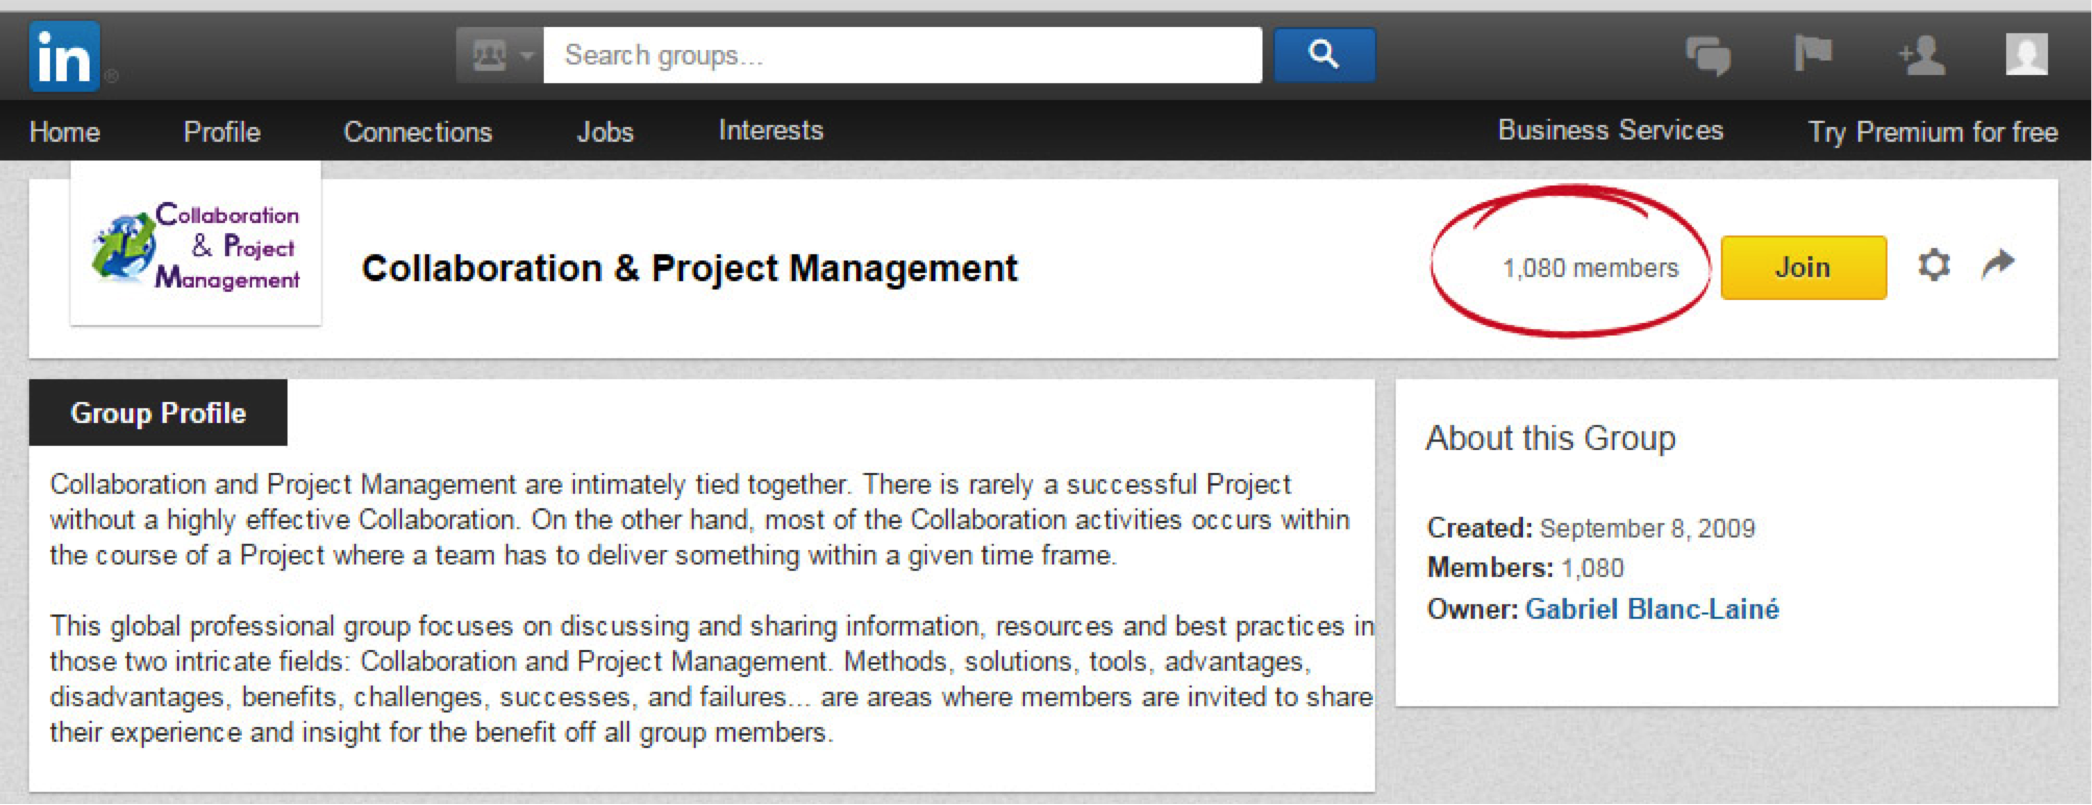 LinkedIn groups like this with 1,080 members is prime property to get leads.